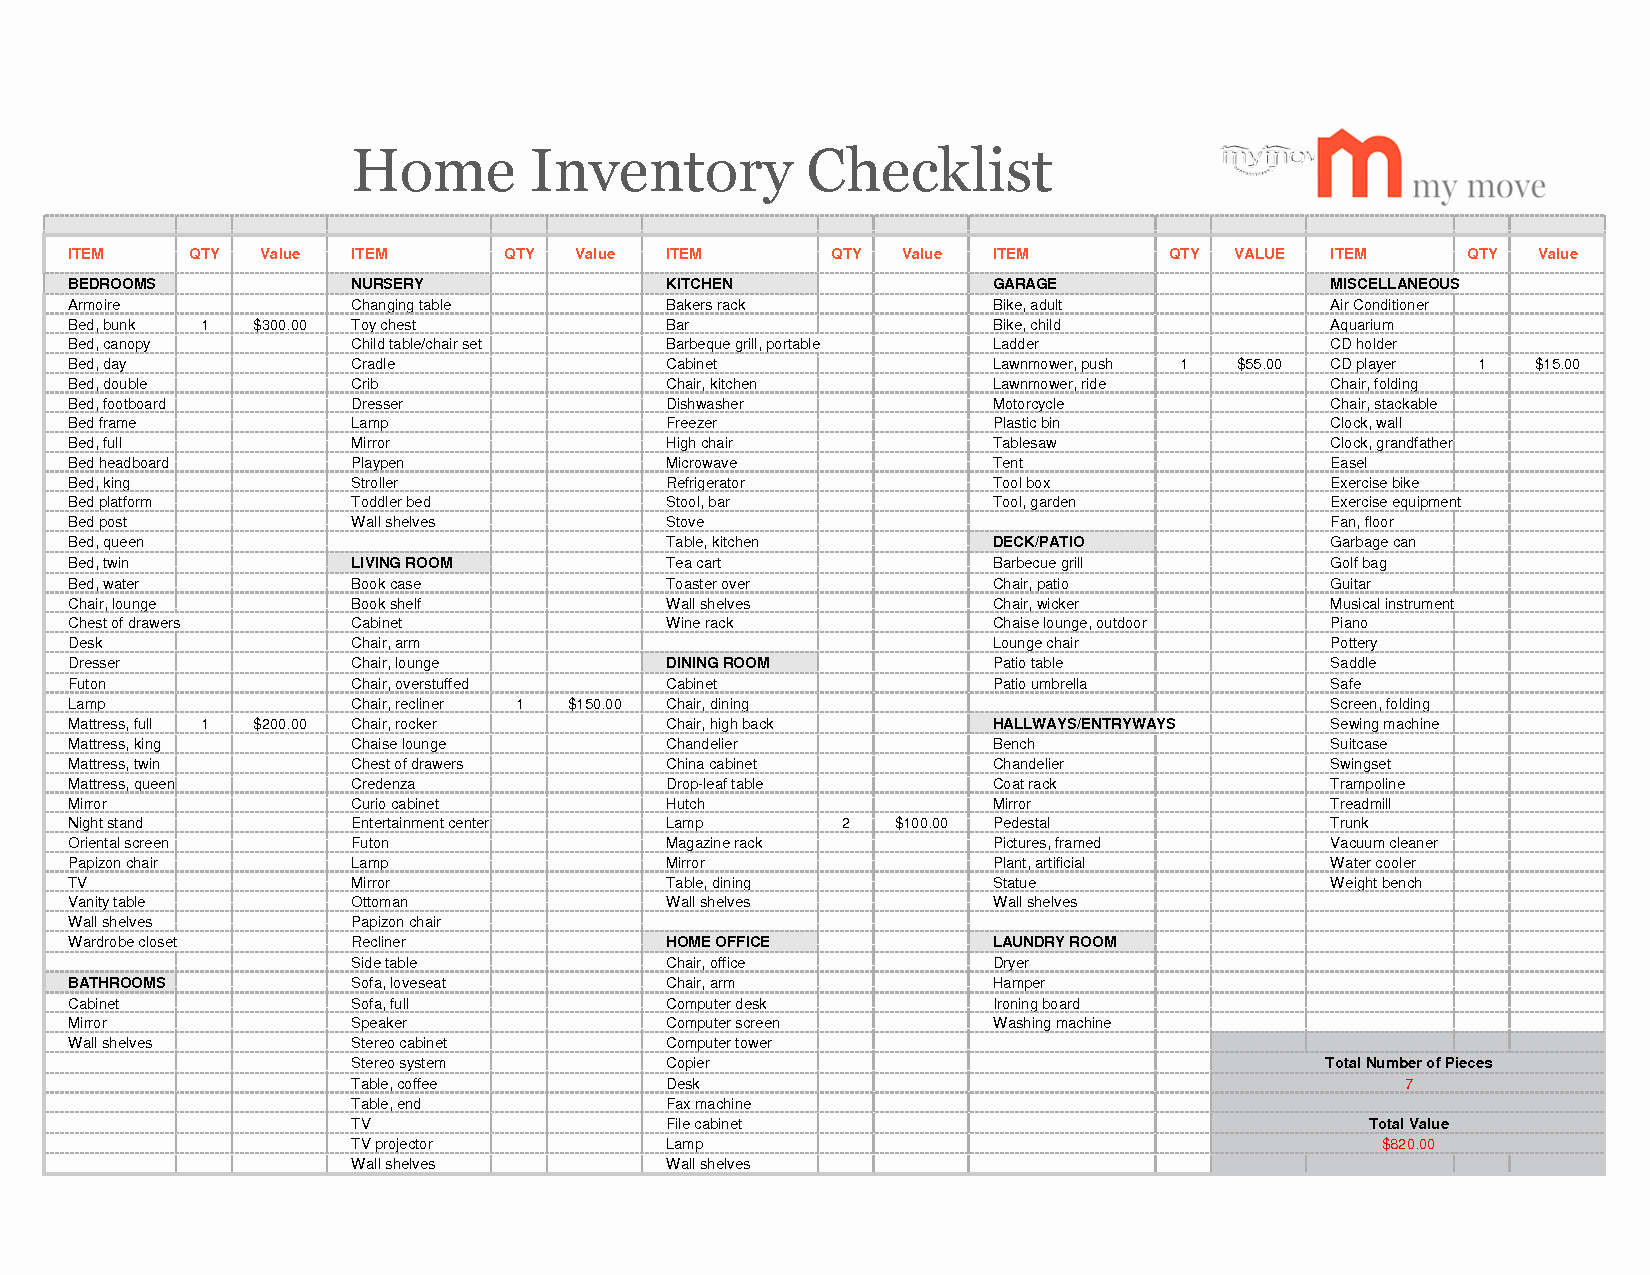 Inventory Spreadsheet Google Pertaining To Household Inventory Spreadsheet Home Google Docs Excel For Moving